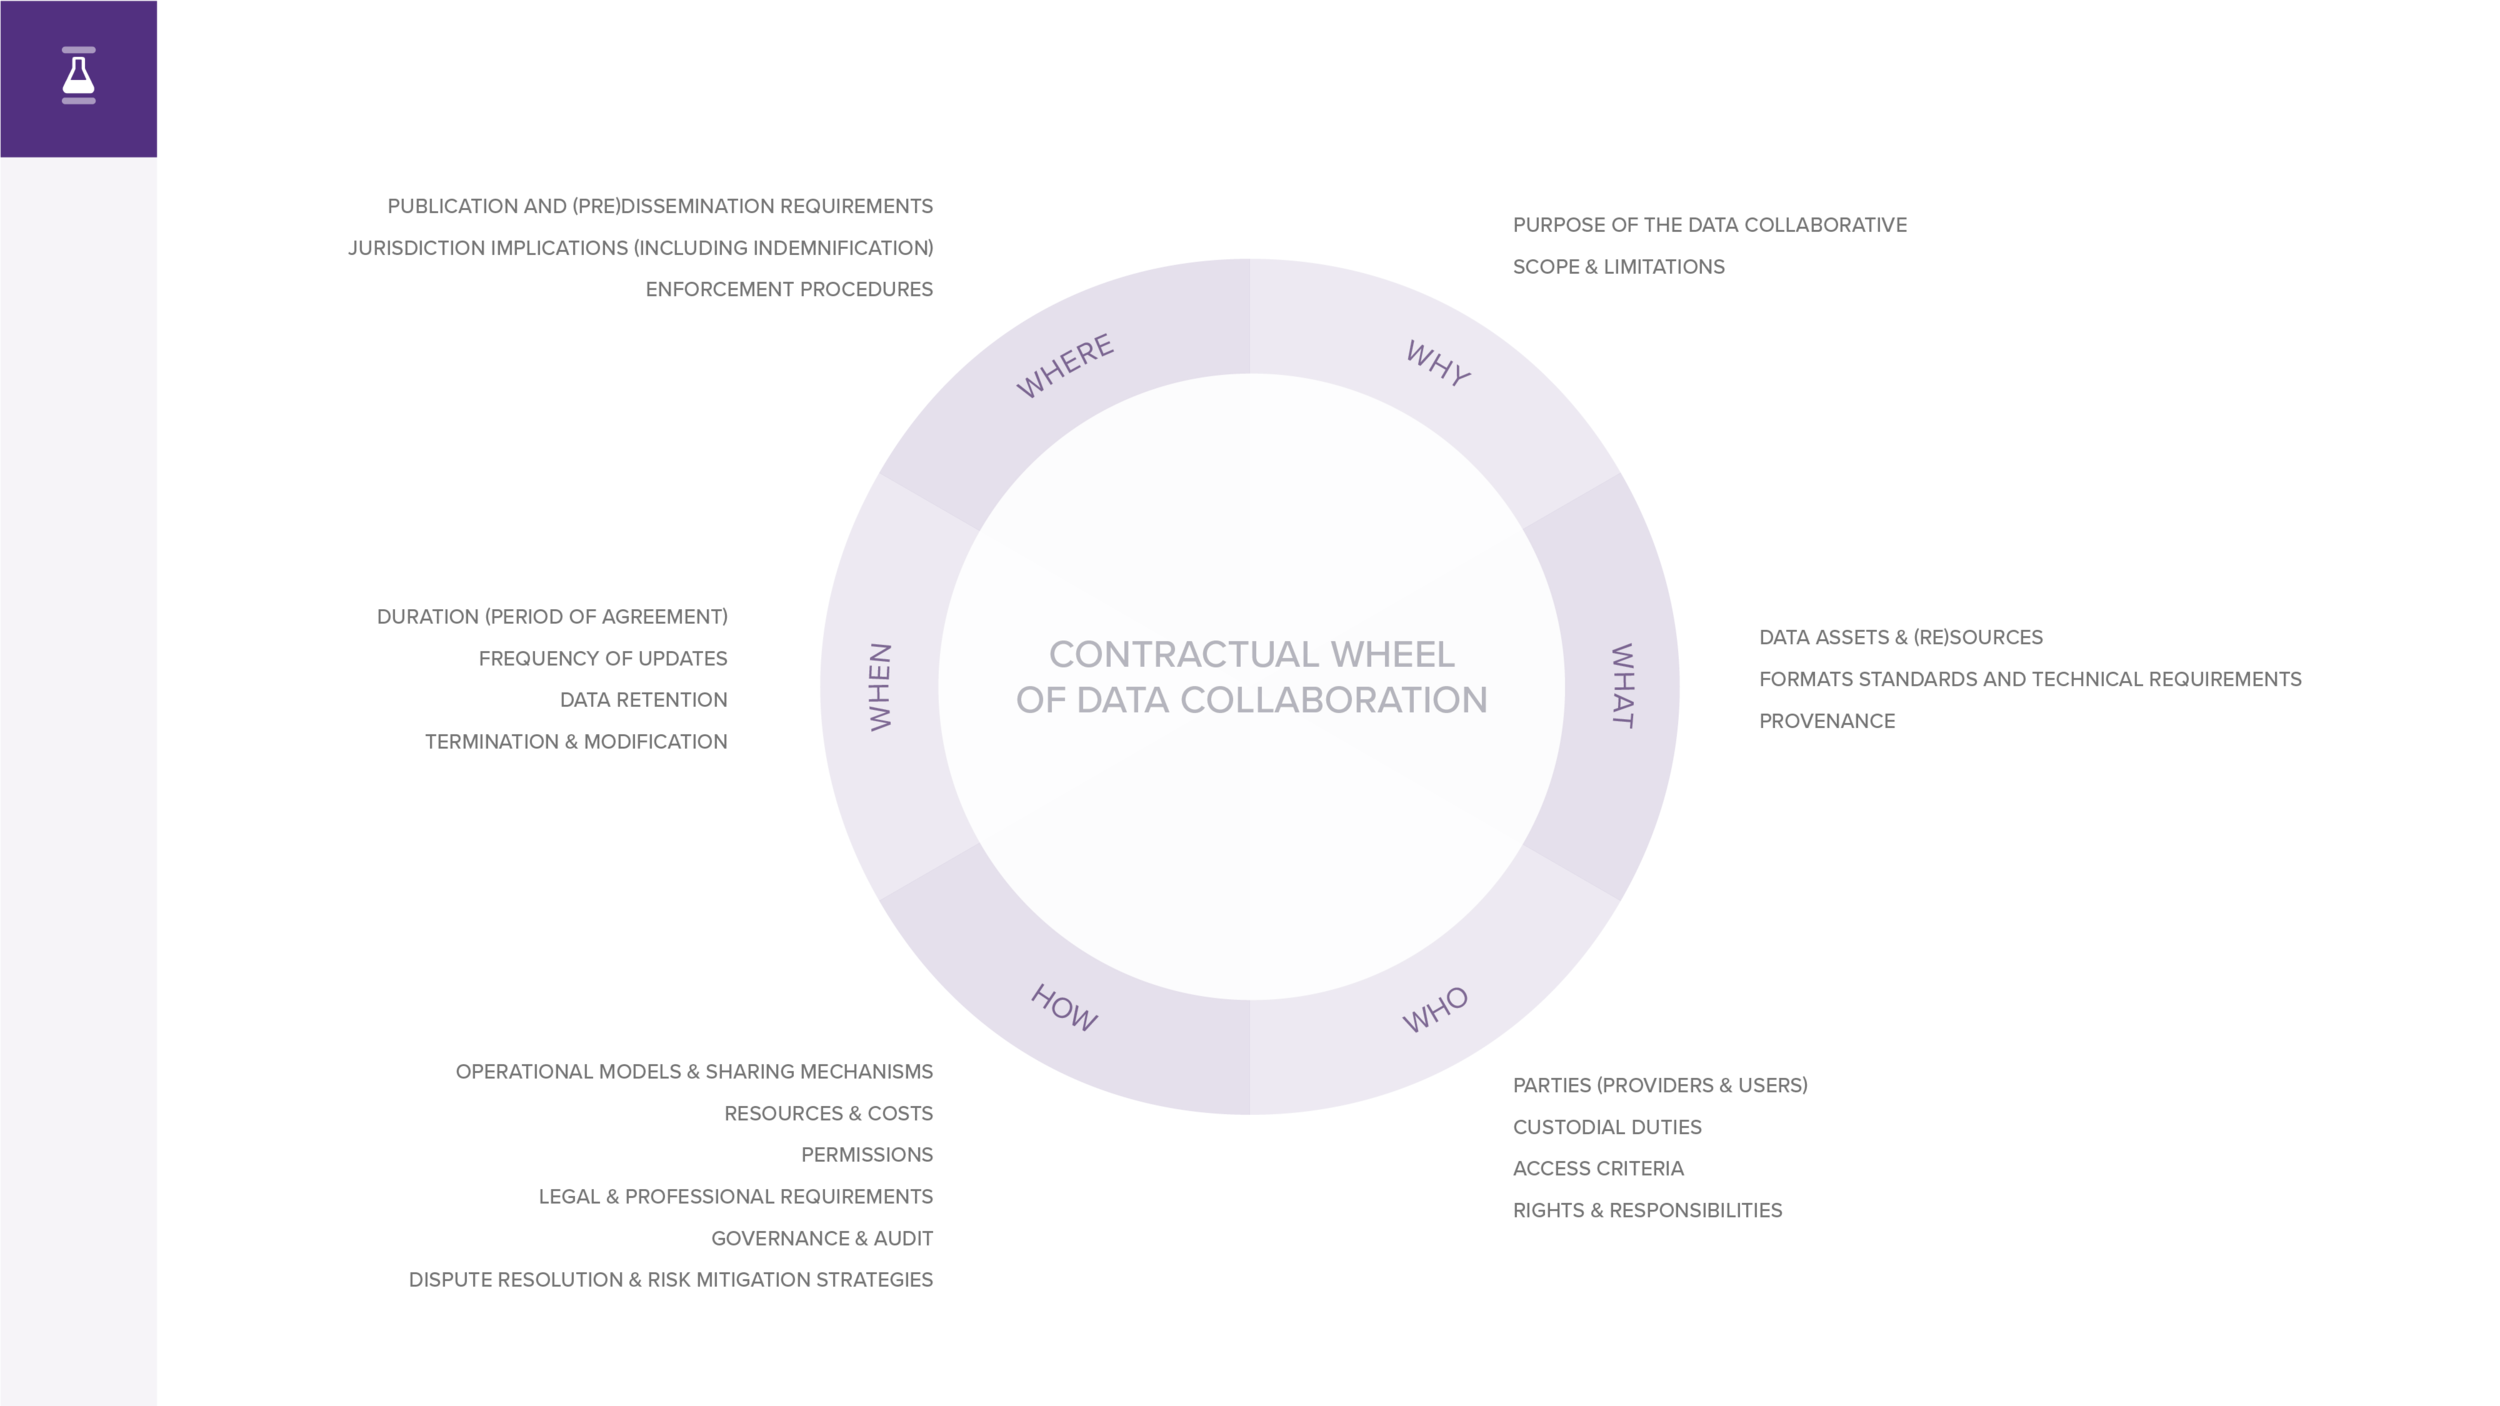 "The GovLab's Contractual Wheel of Data Collaboration. See Stefaan G. Verhulst, "" Data Collaboratives: The Emergence of Public Private Partnerships around Data for Social Good. """